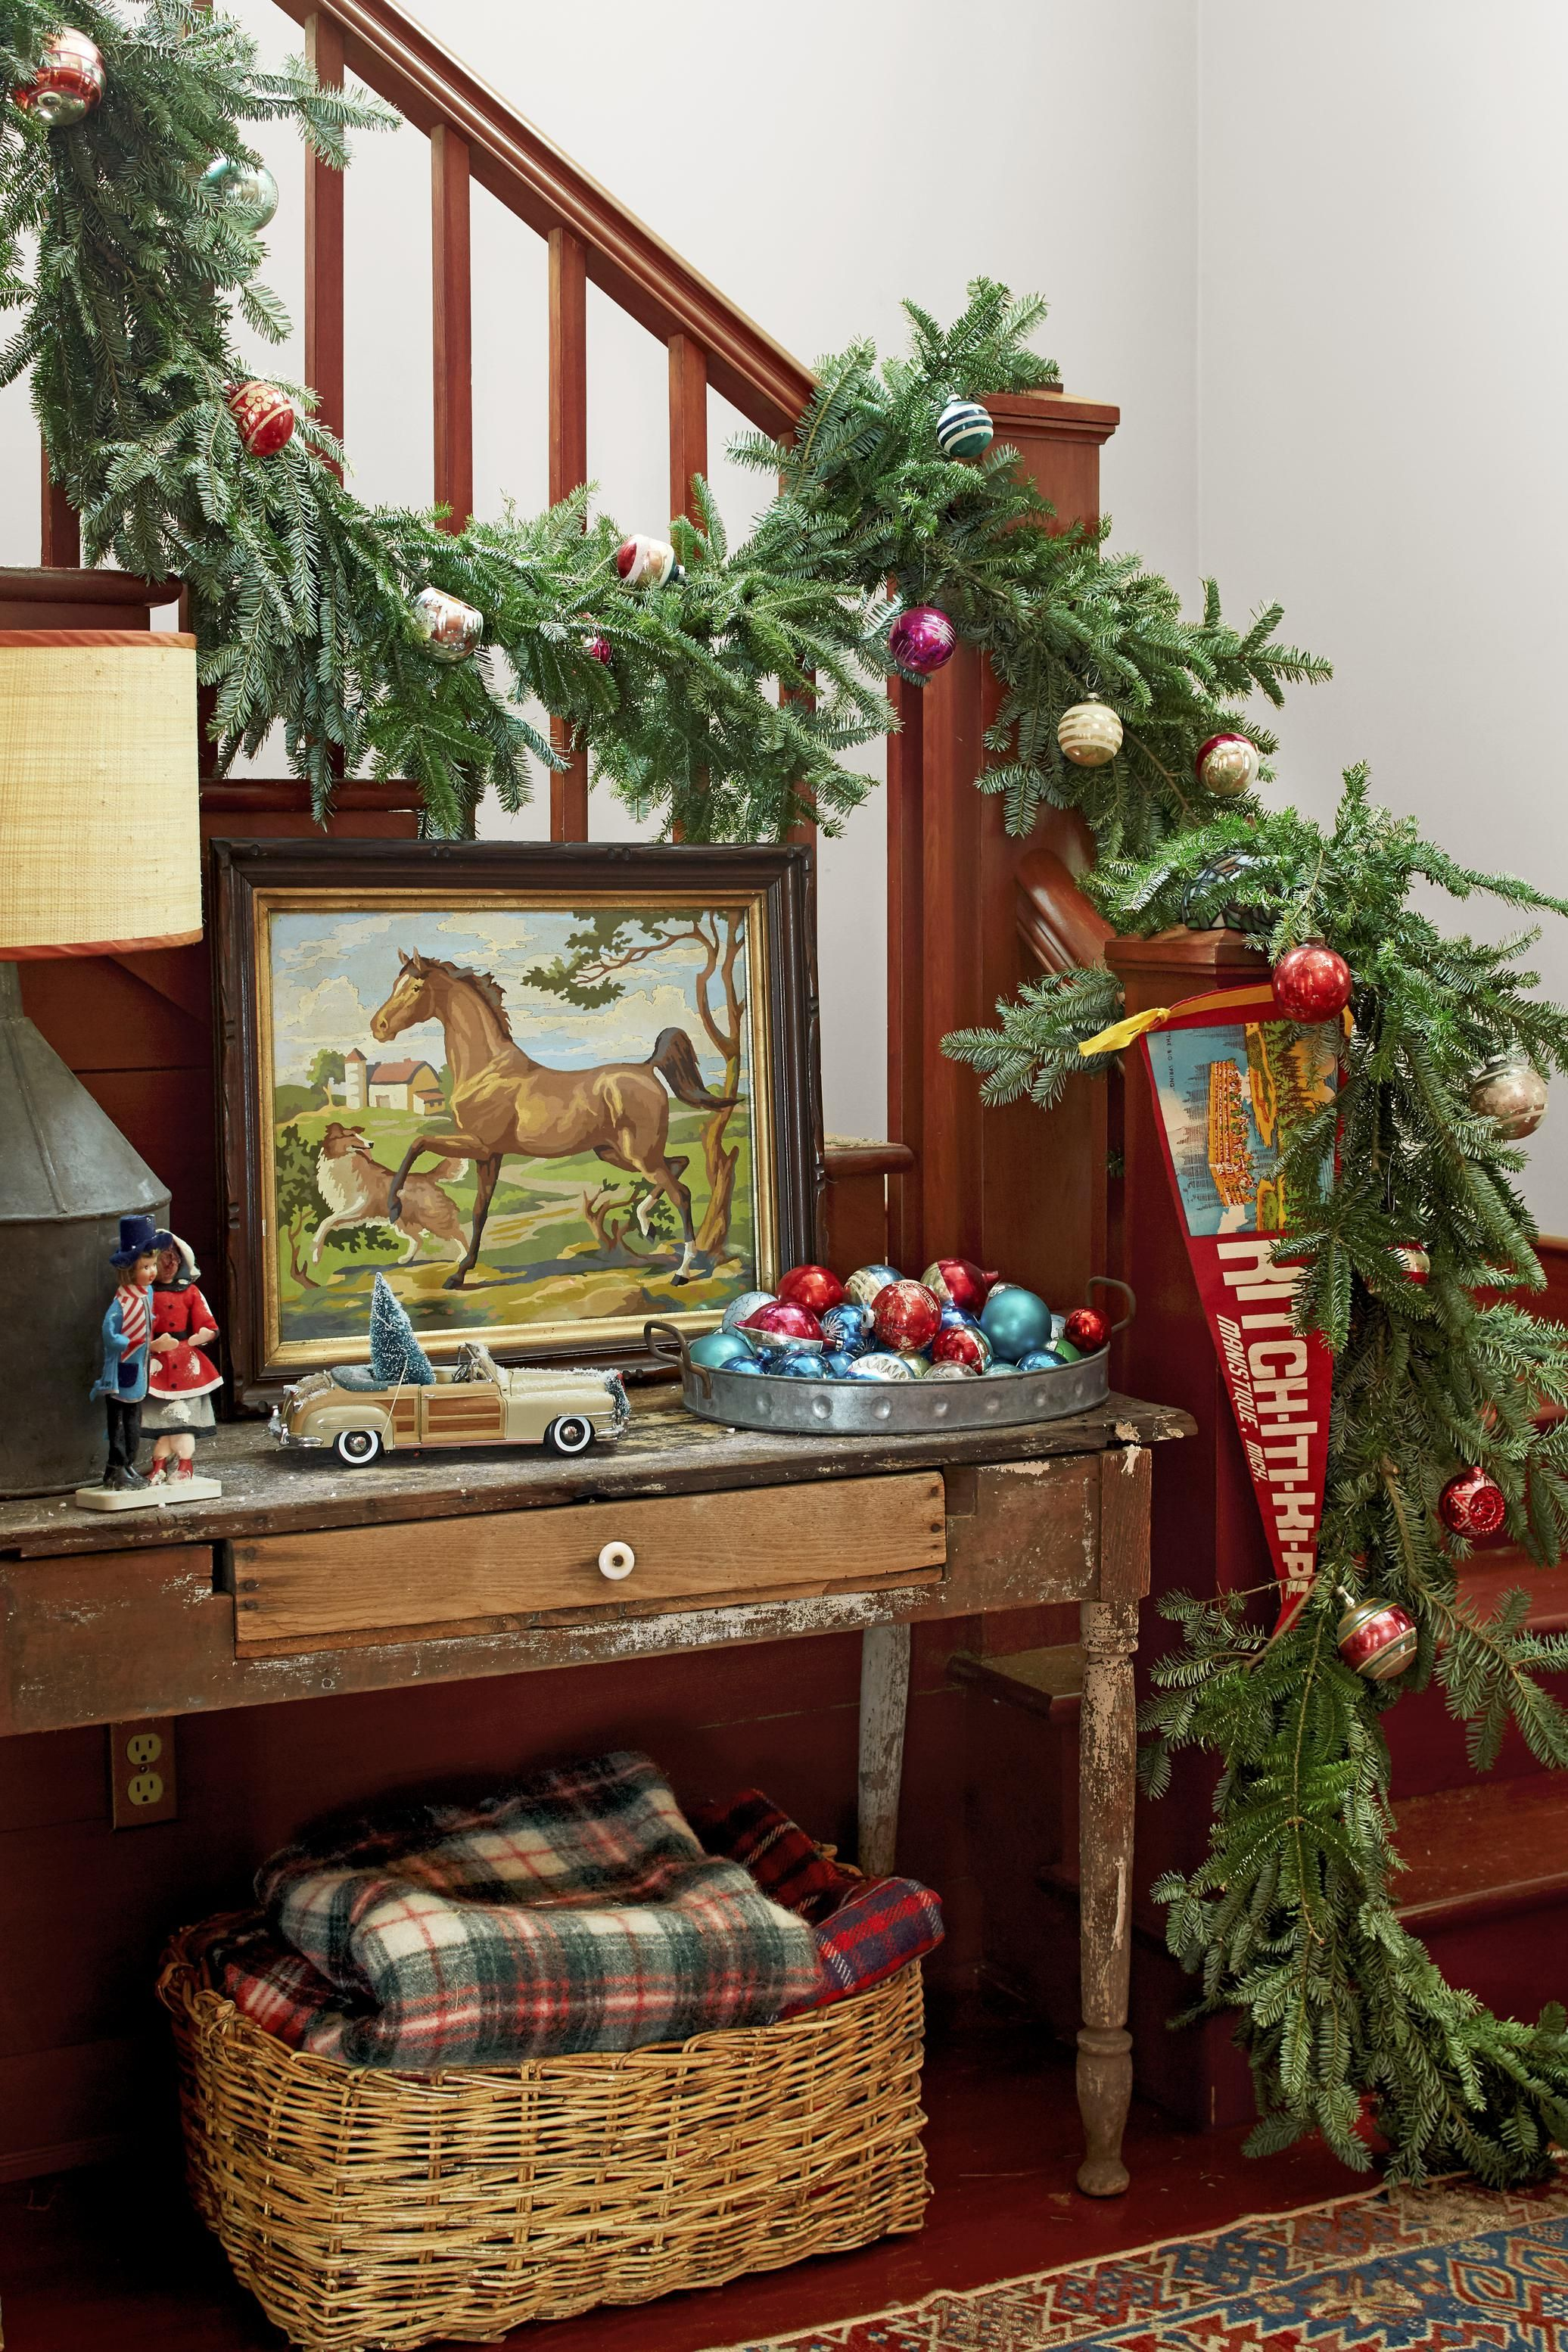 31 Farmhouse Christmas Decorating Ideas Diy Holiday Decorating Ideas From Your Farmhouse